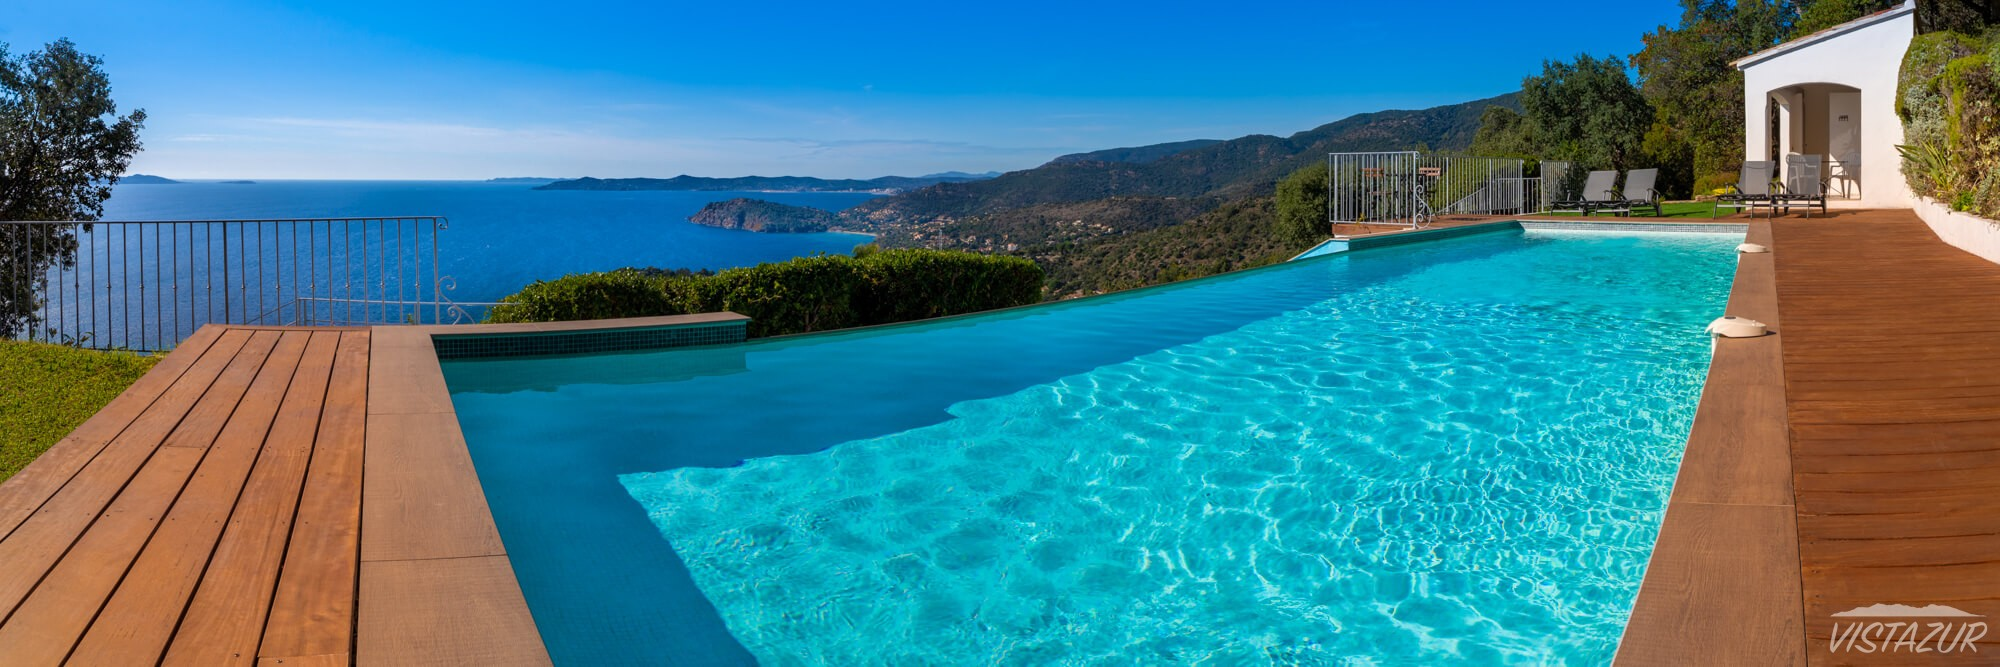 Vistazur guest's pool in Rayol-Canadel, Azure Coast France